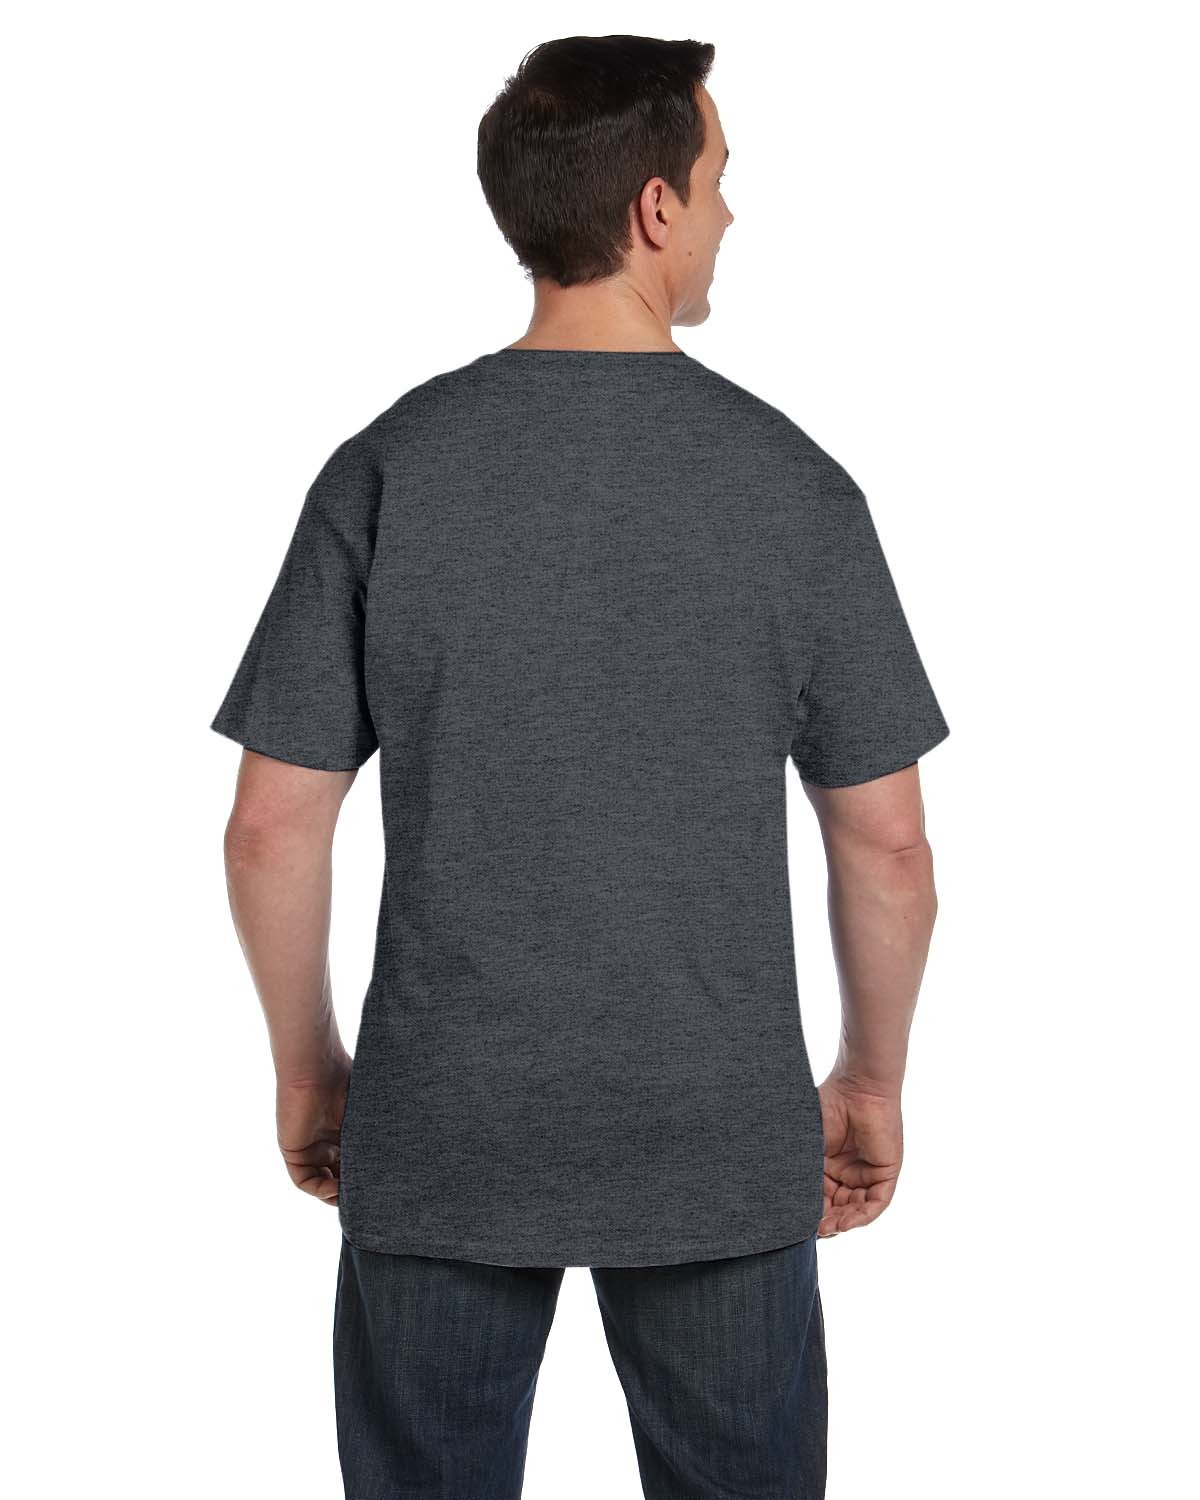 5190P Hanes CHARCOAL HEATHER